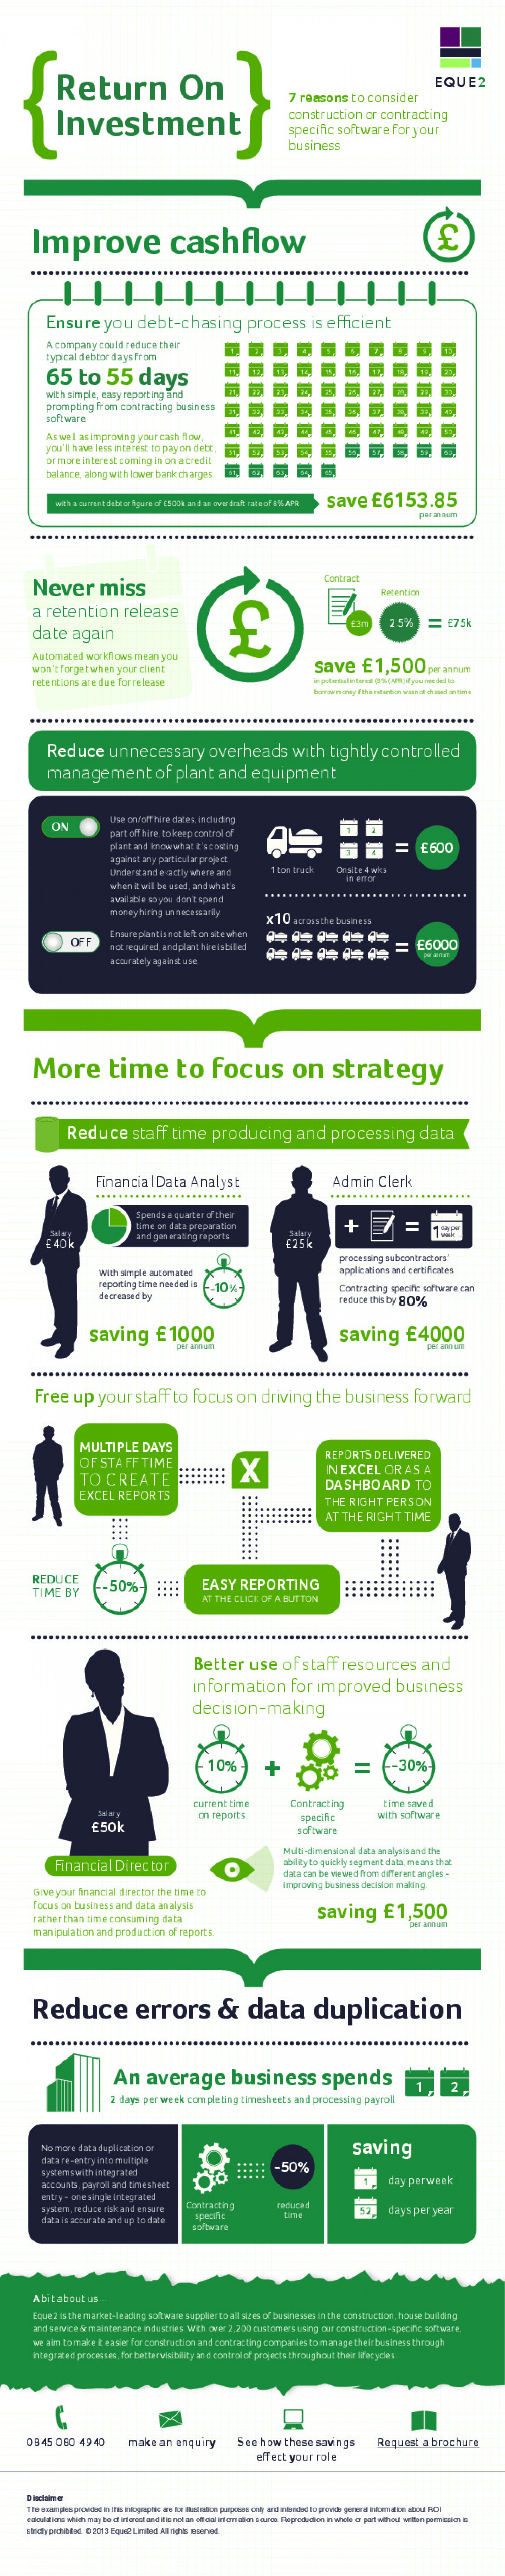 Return on Investment Infographic